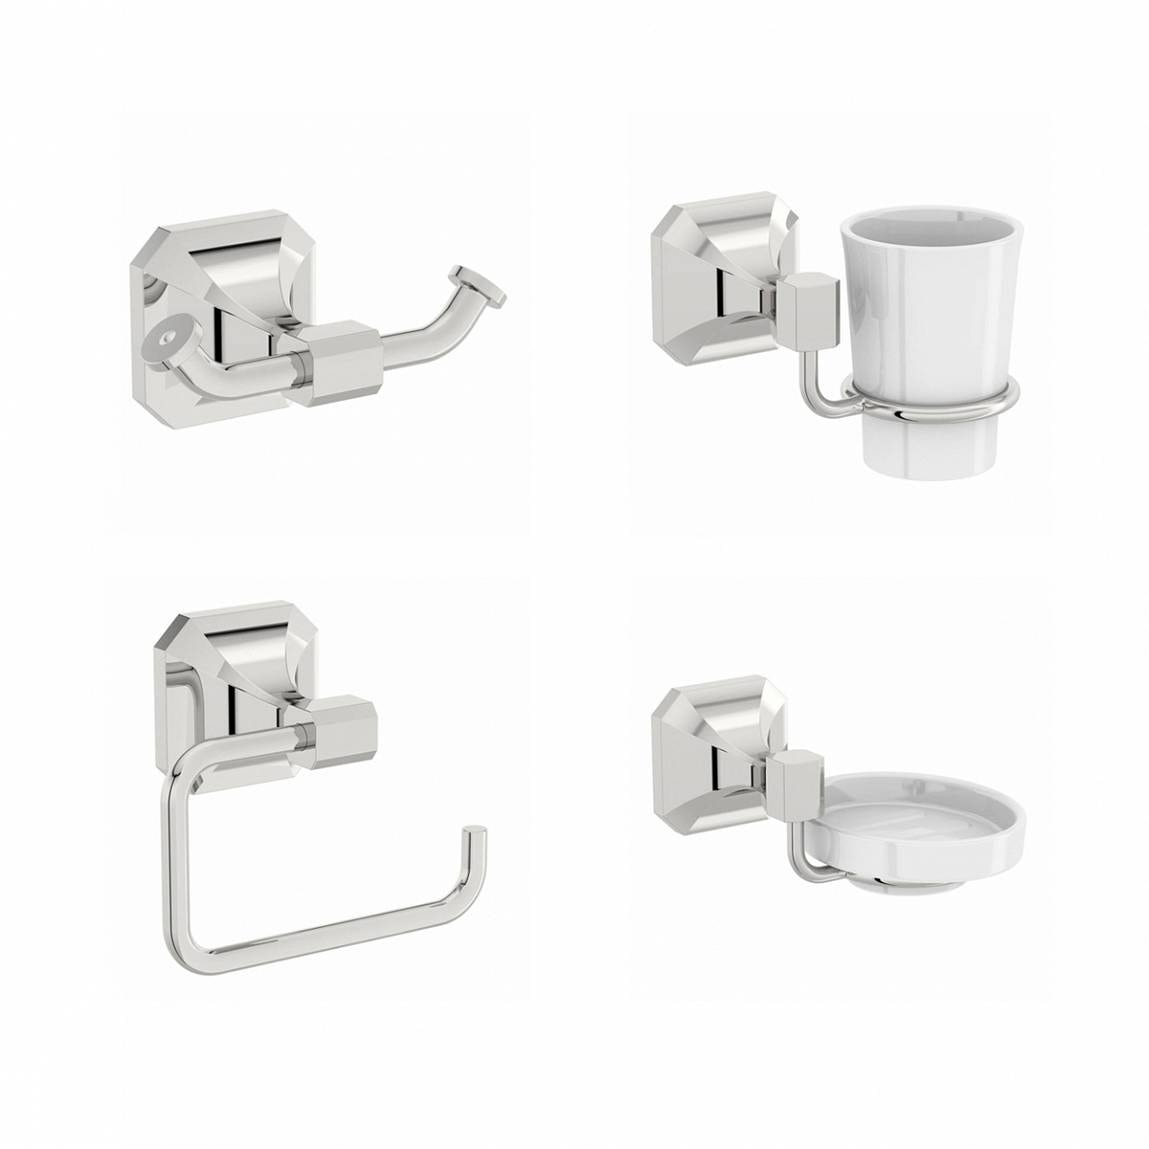 The Bath Co. Camberley ensuite accessory set